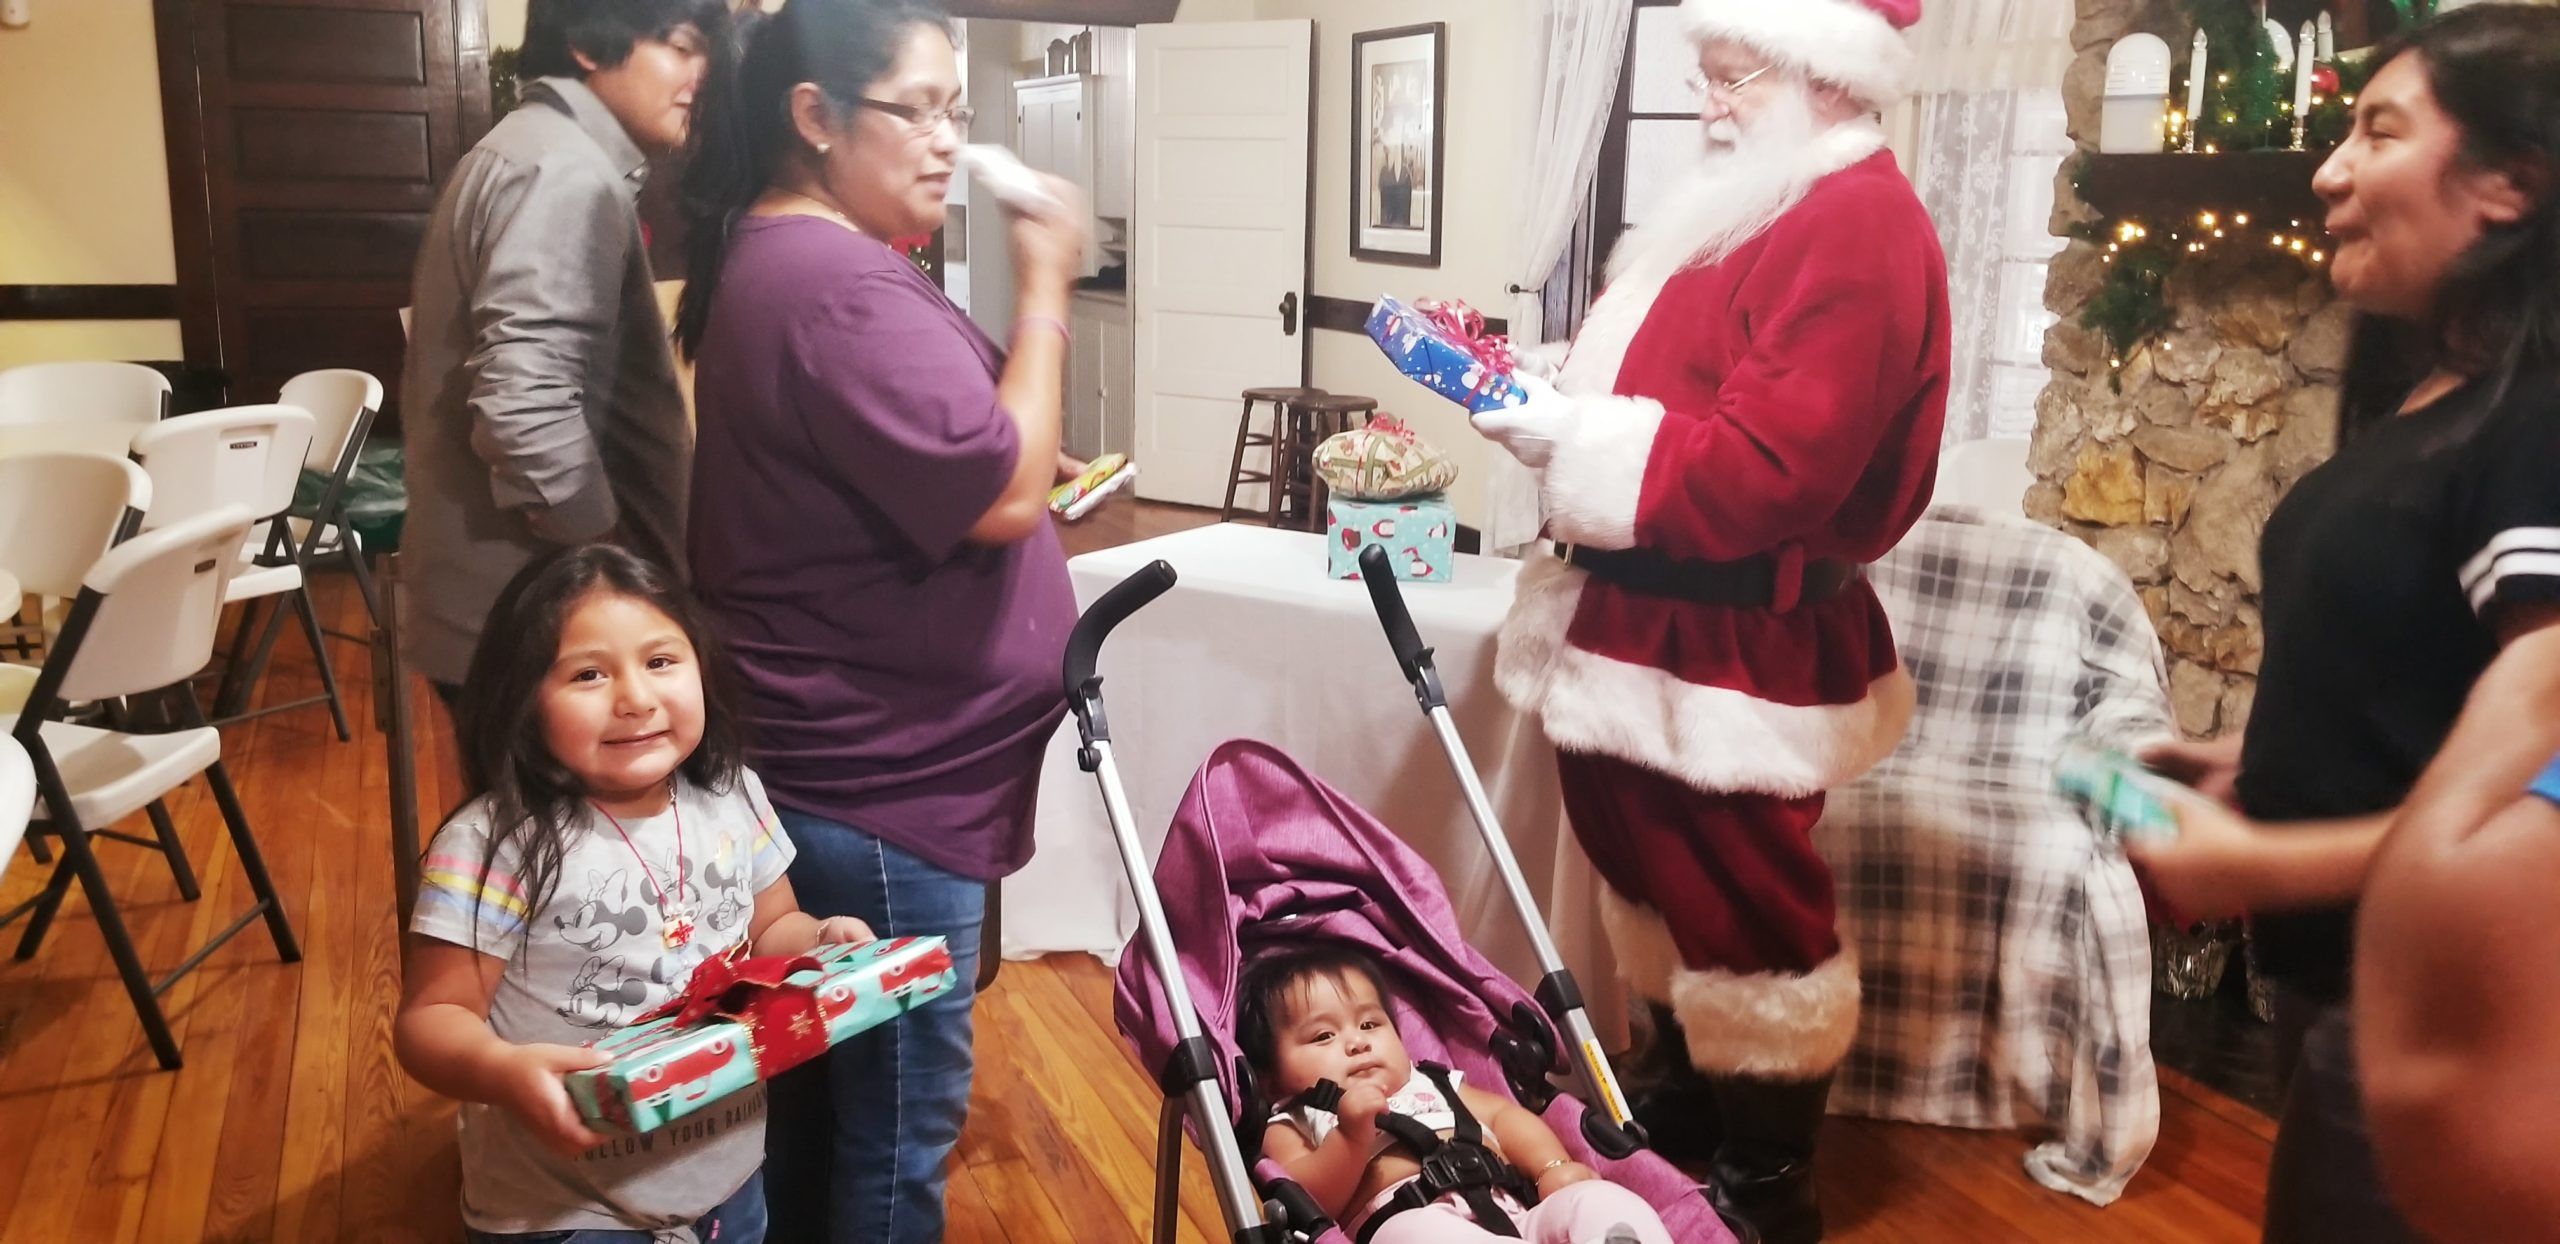 FAMILIES RECEIVE GROCERIES N GIFTS FROM SANTA!